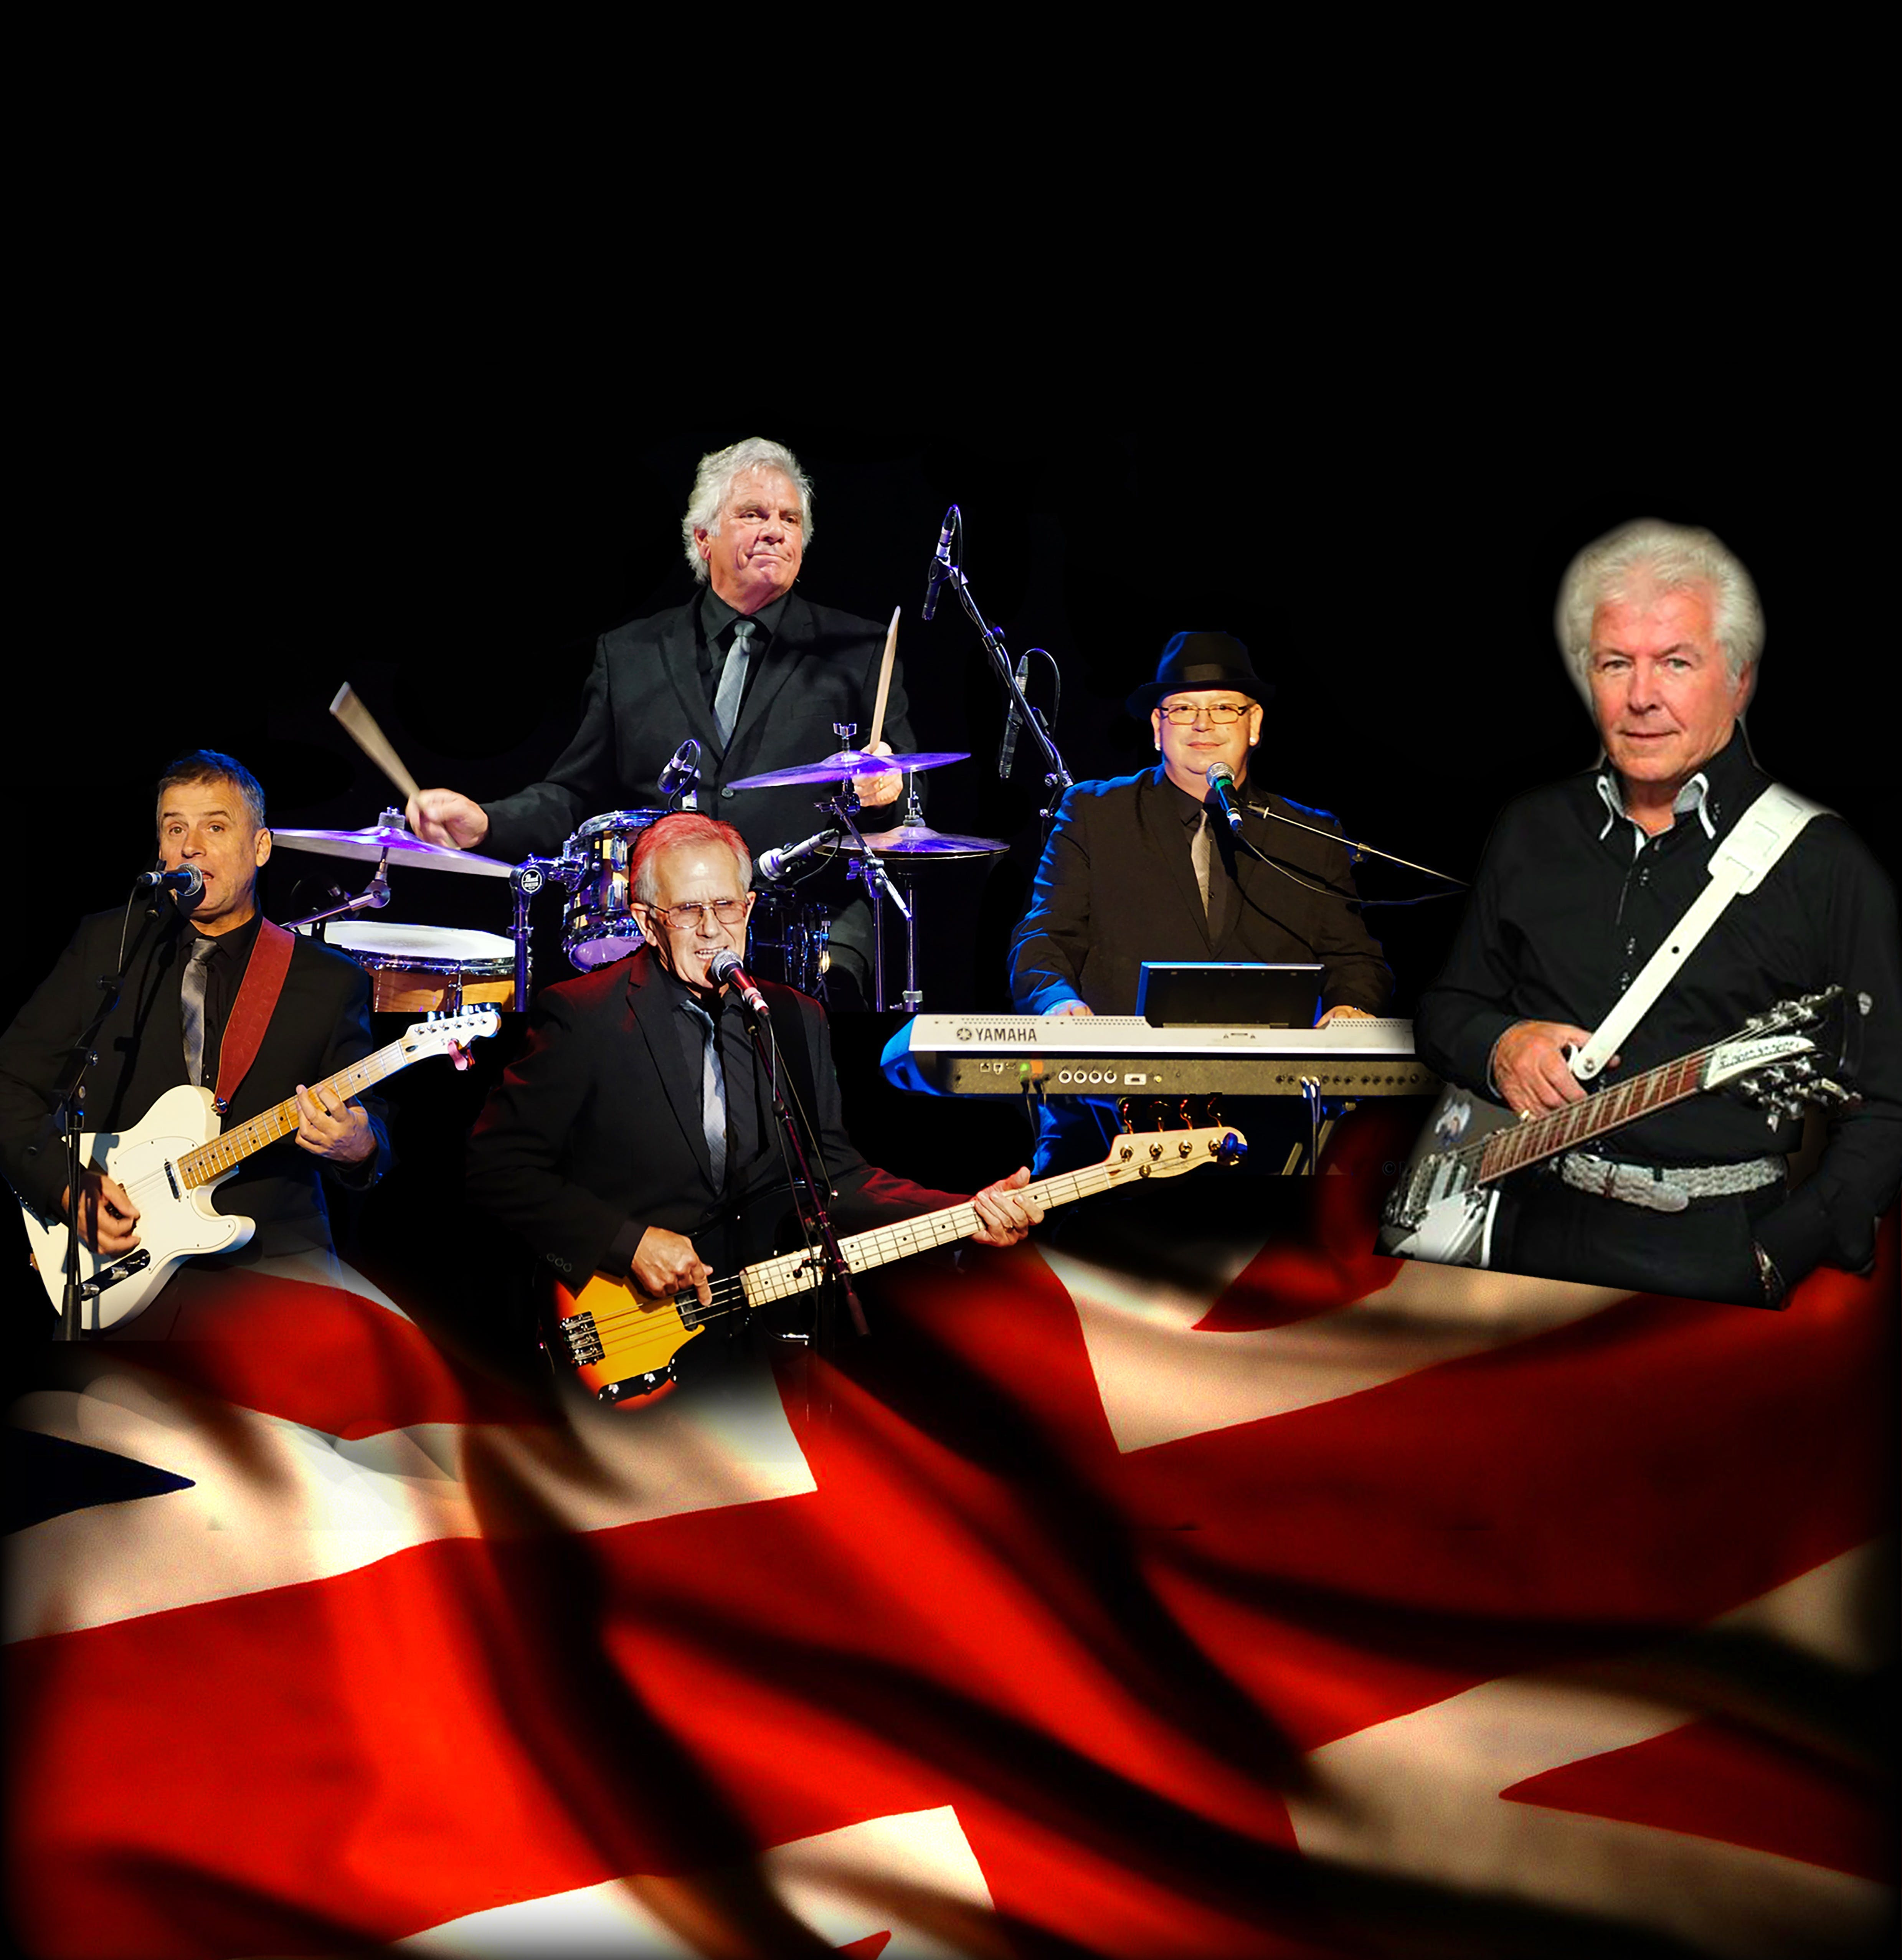 Herman's Hermits with Special Guest Mike Pender - The Six O'Clock Hop - Tourism Gold Coast